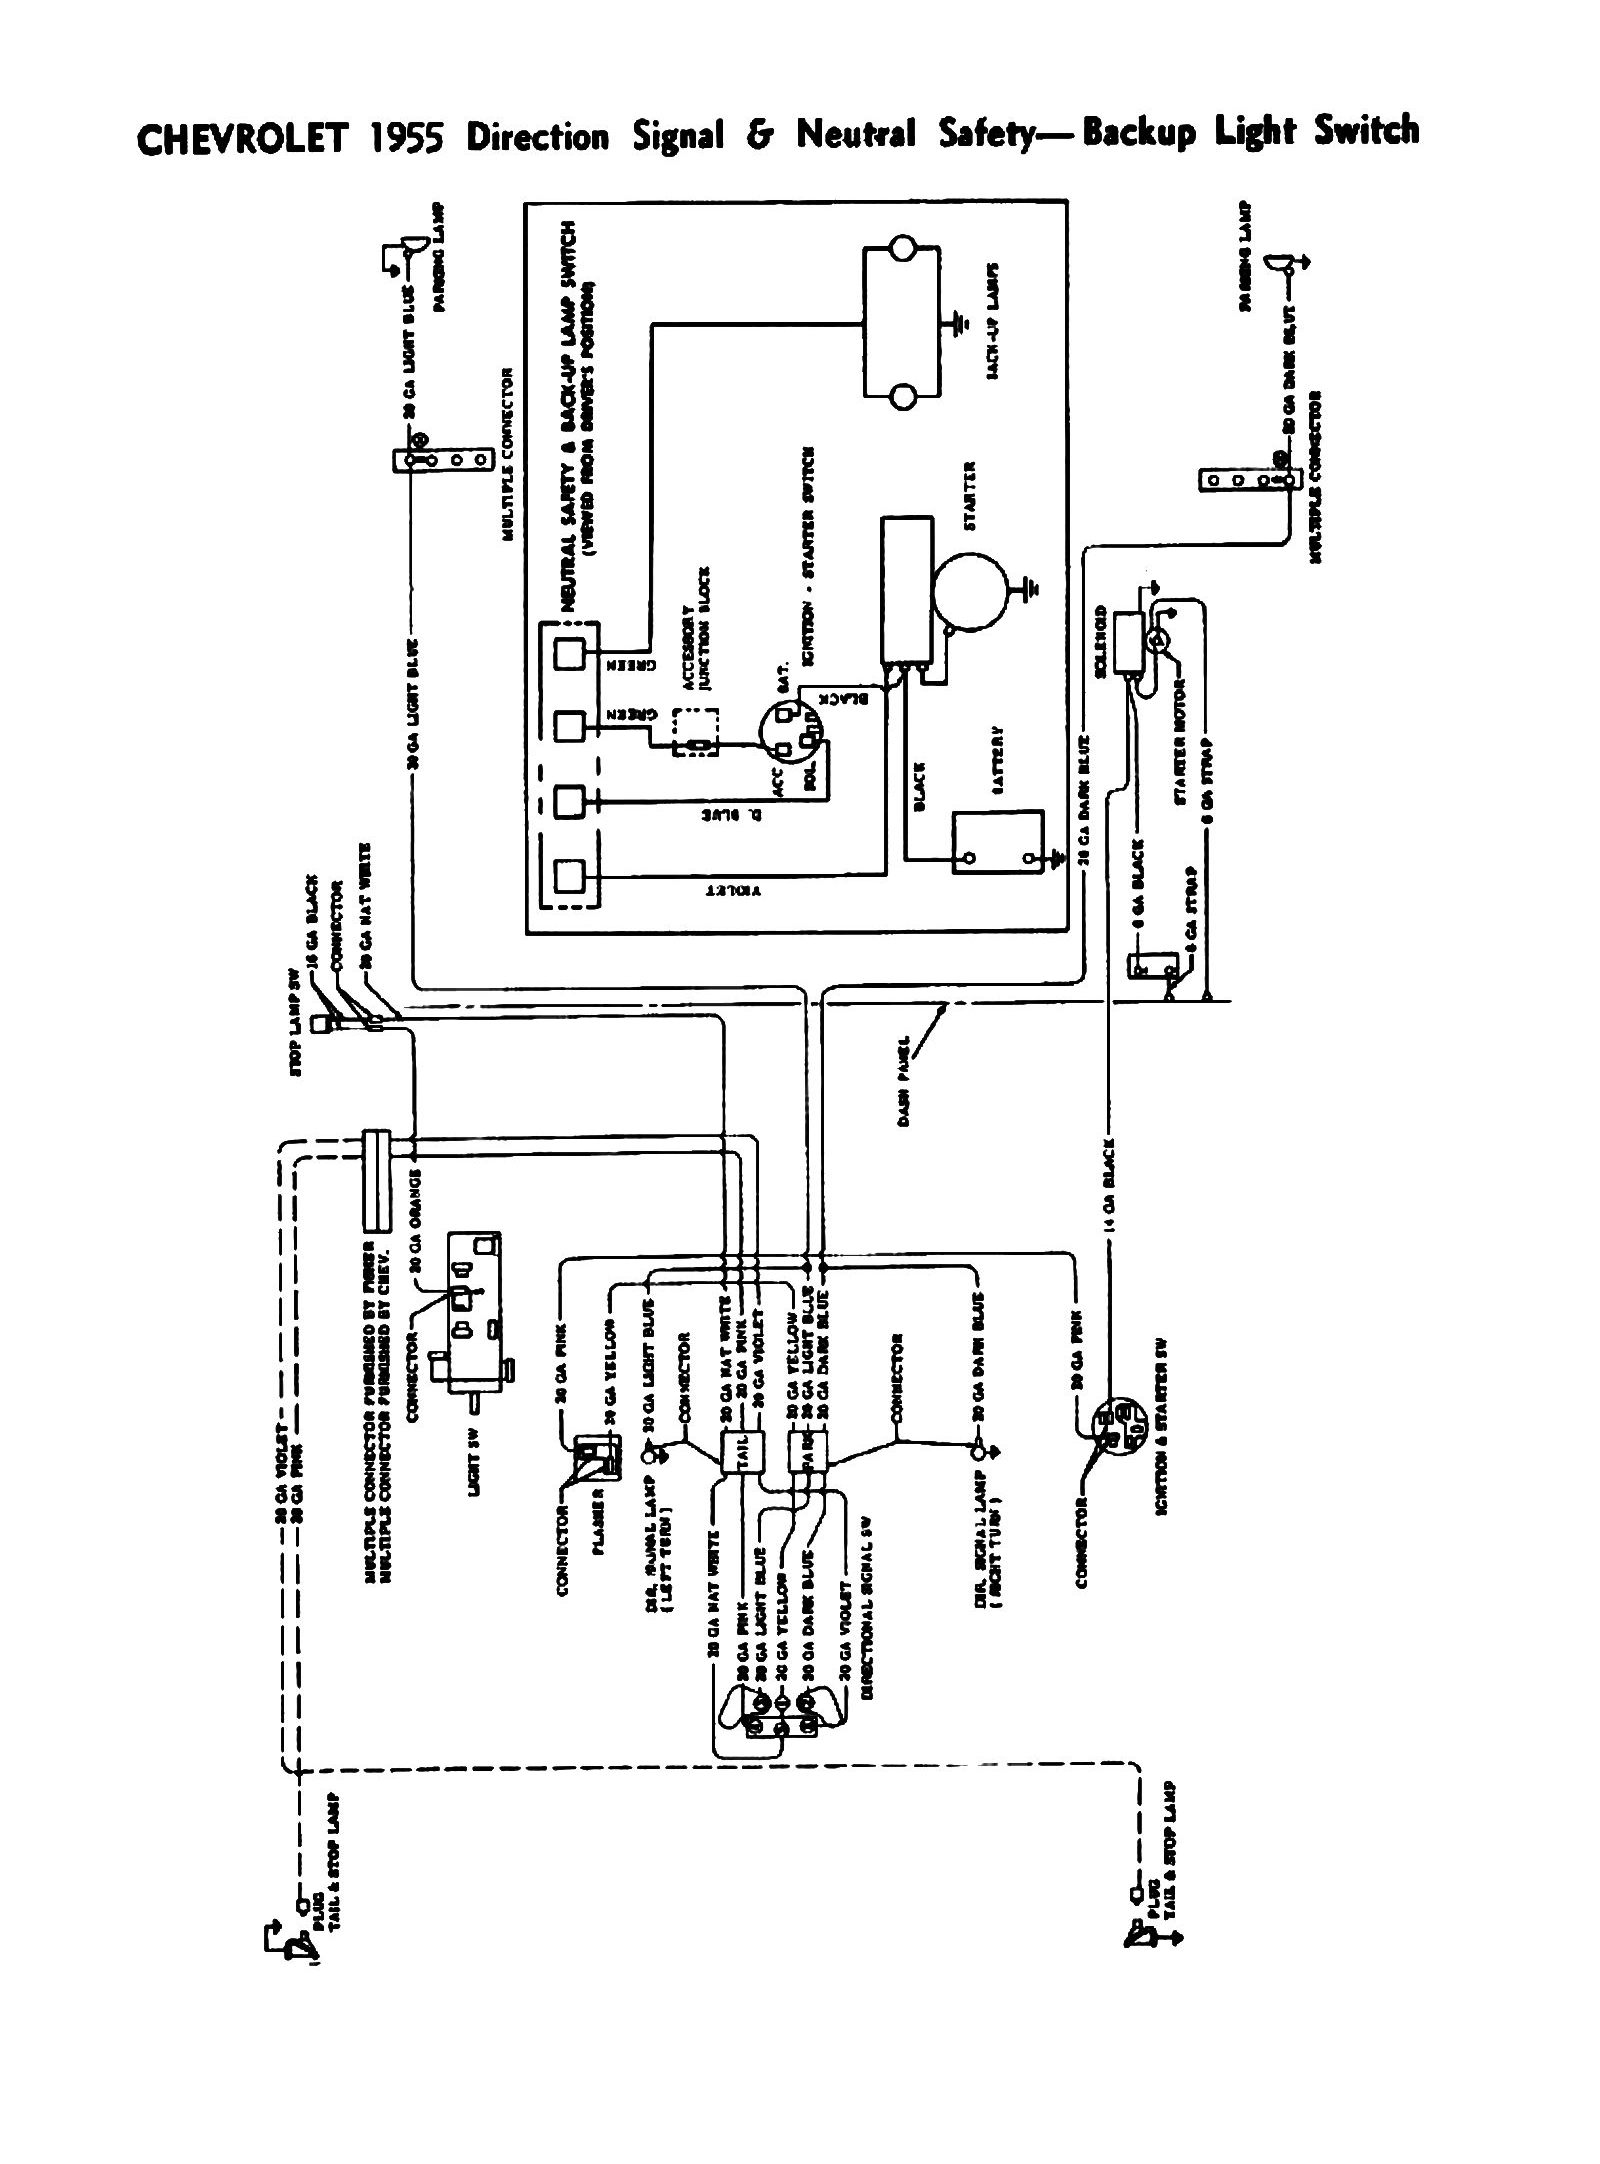 57 chevy pickup wiring diagram wiring diagram u2022 rh tinyforge co 1995 chevy truck wiring harness 1955 chevy truck wiring kit